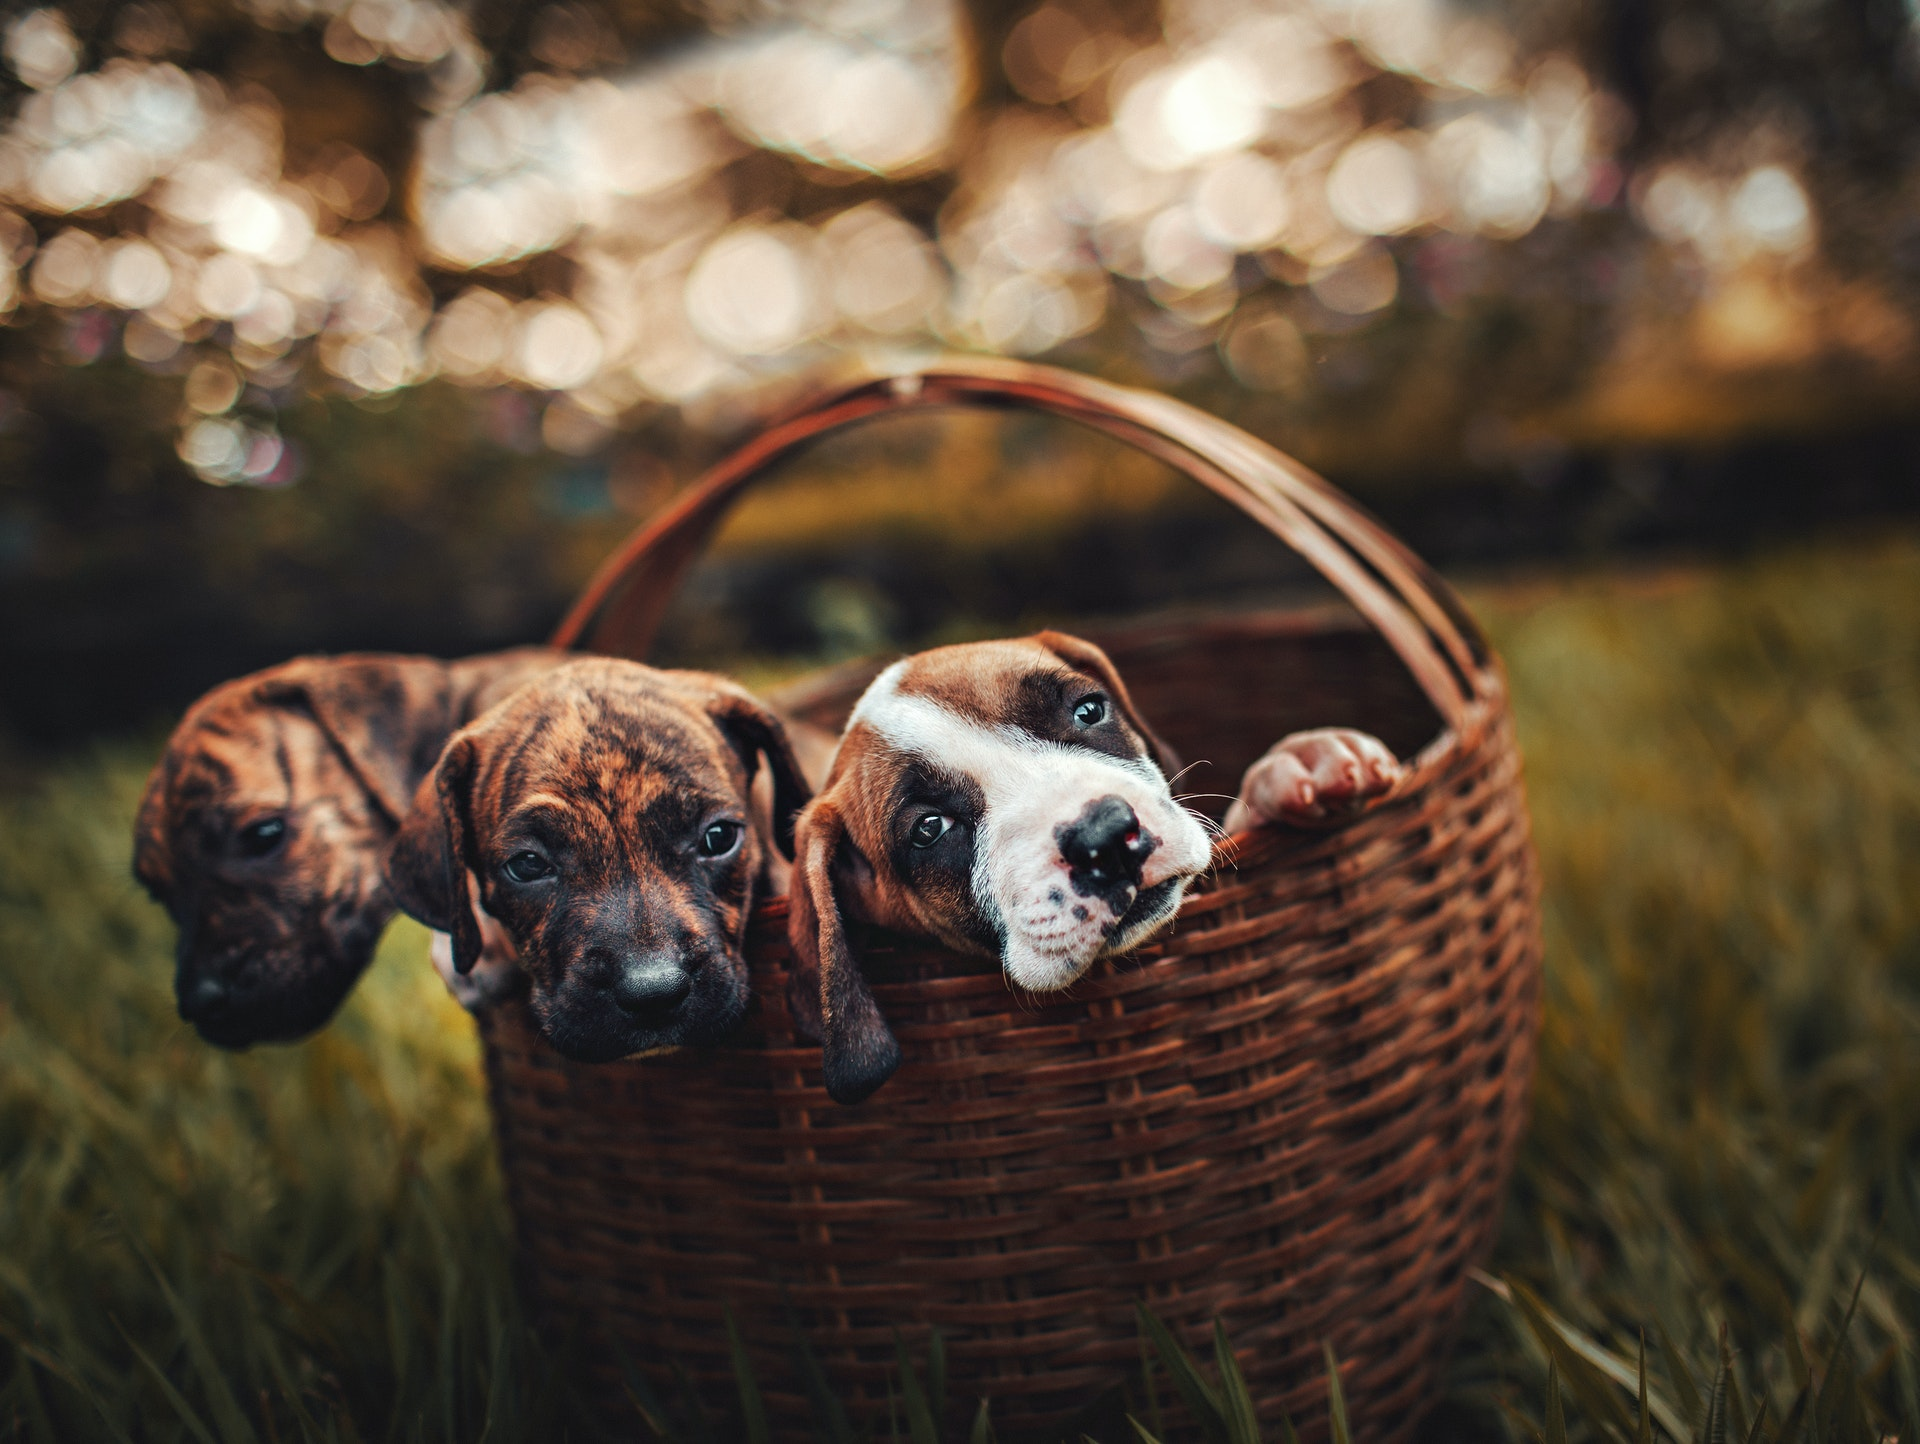 Finding Puppies for Sale: Tips to Help Reduce Stress for Your New Puppy